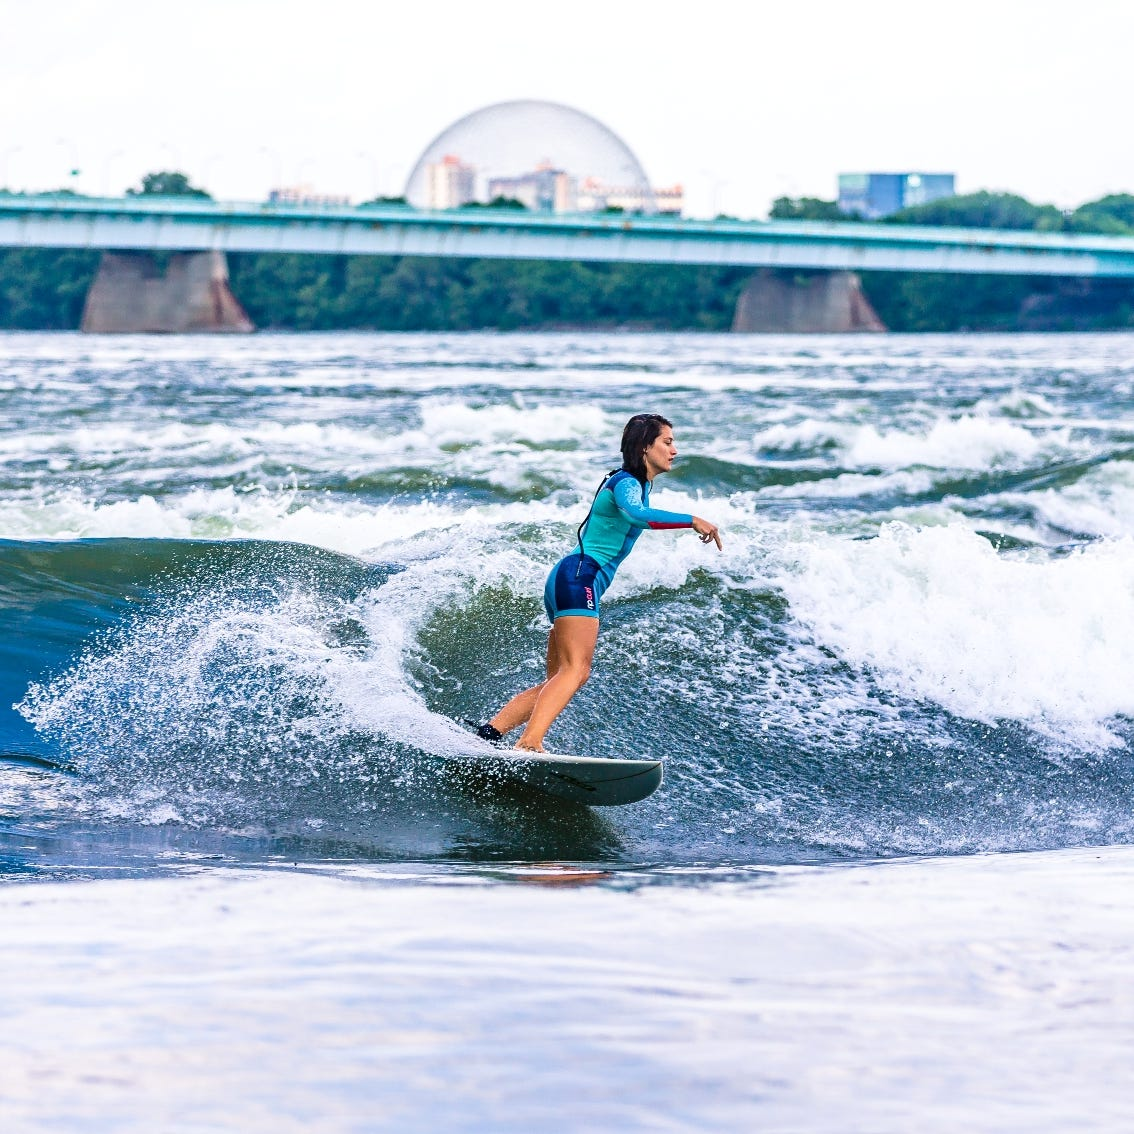 10 surprising places to surf year-round (besides Florida)